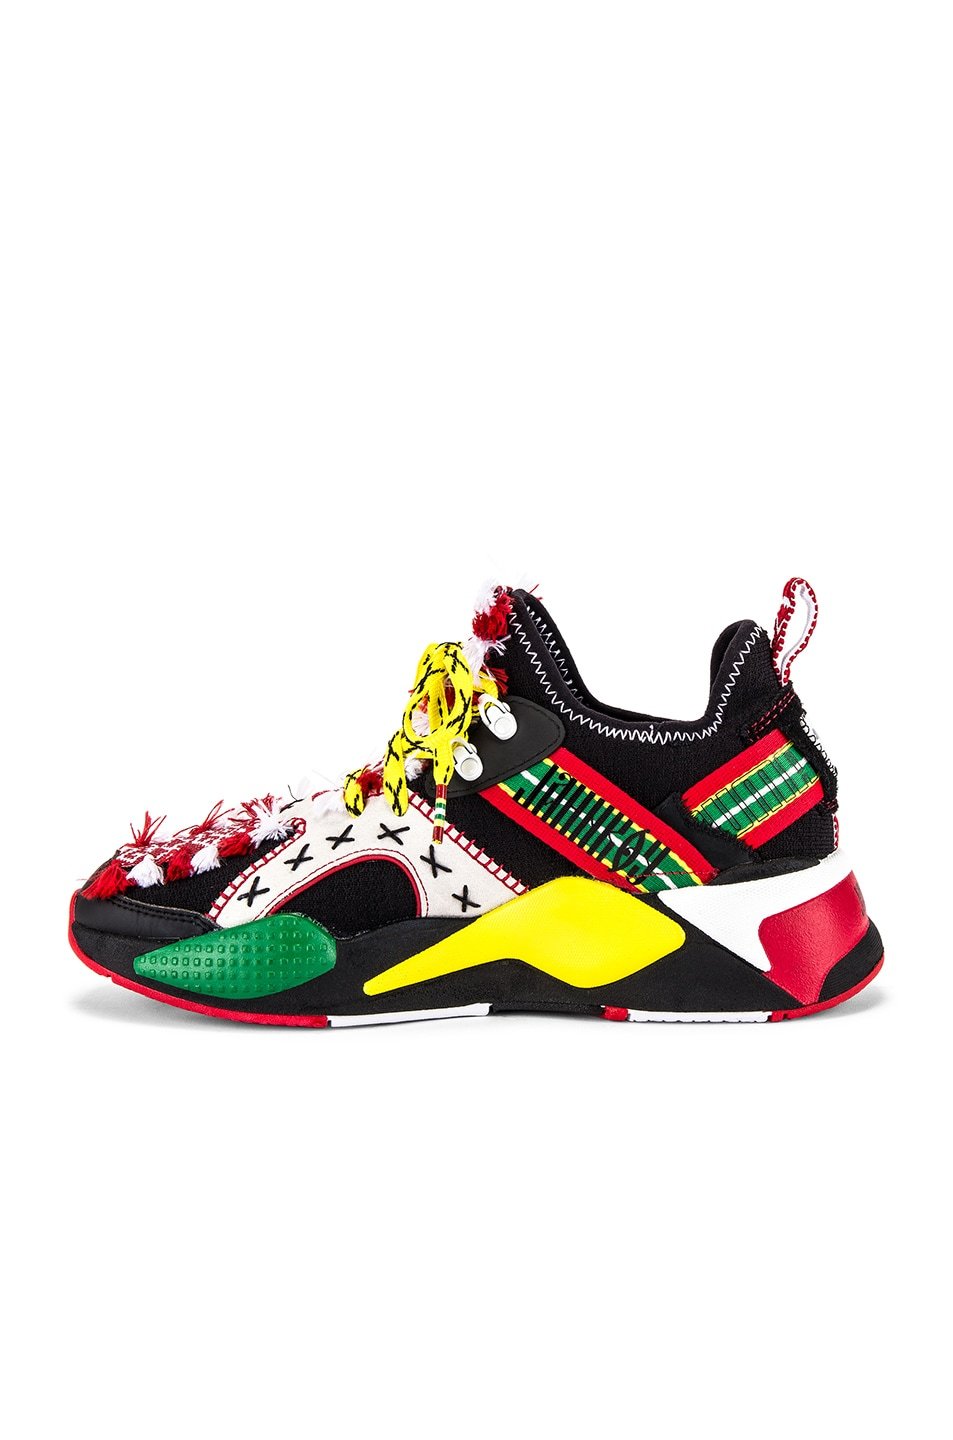 Image 5 of Puma Select RS-X Knit Jahnkoy in Puma Black